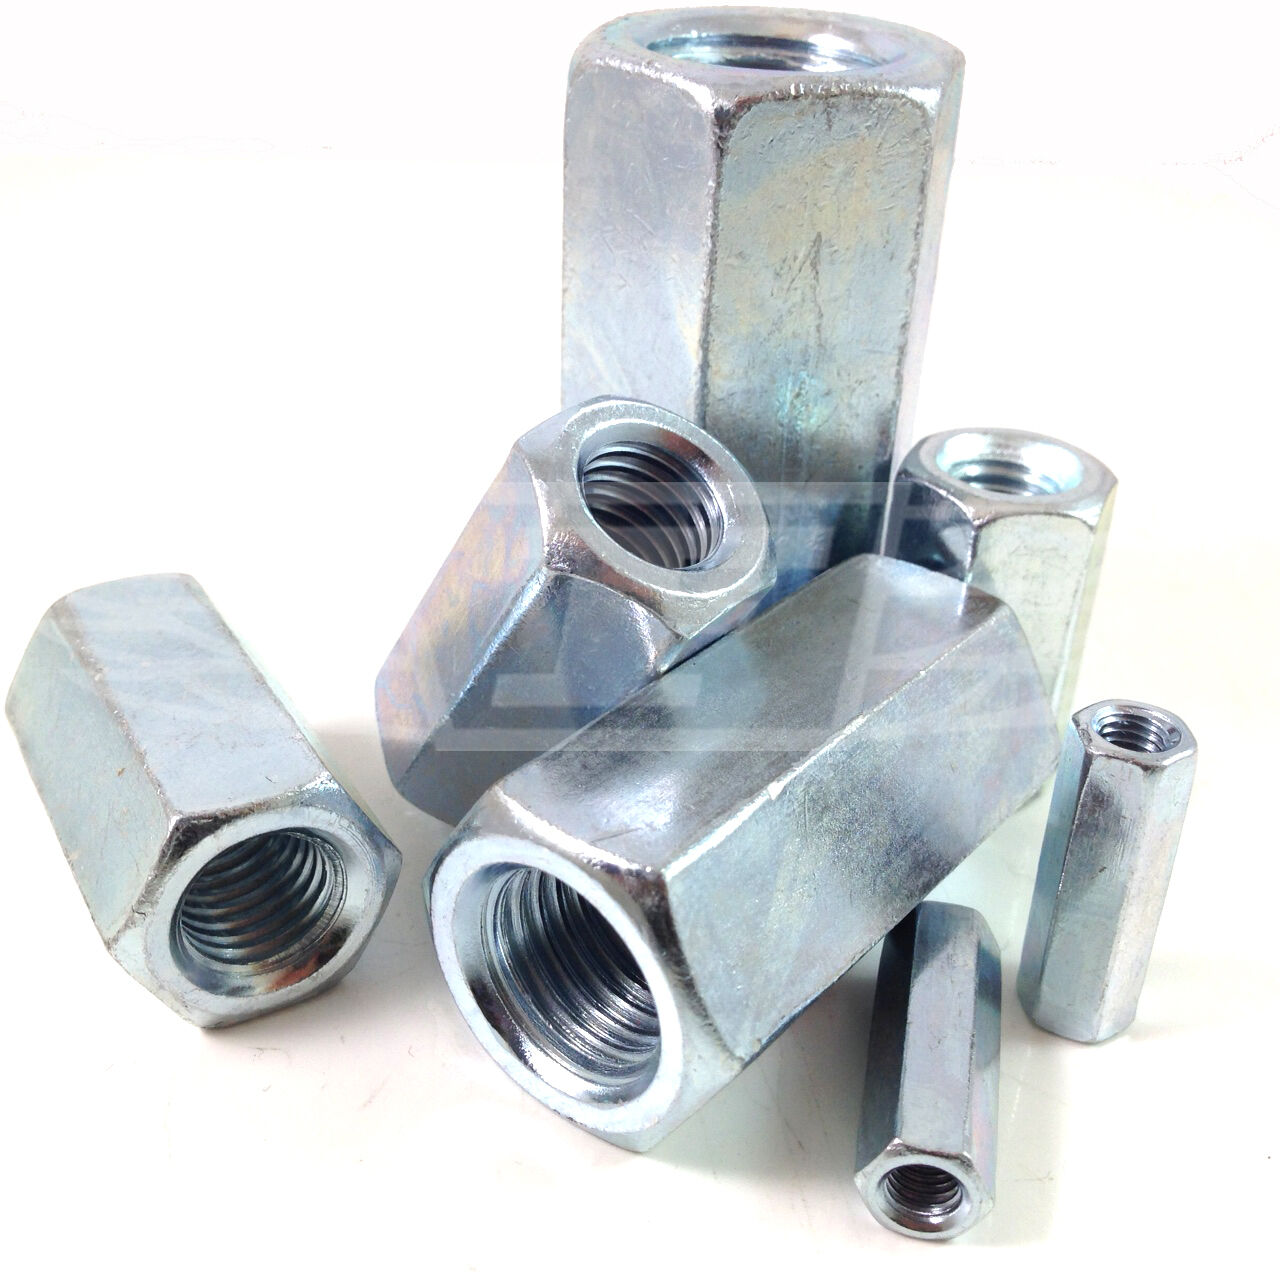 M16 HEX FULLY THREADED STUD CONNECTOR COUPLER JOINING CONNECTING ALLTHREAD NUT